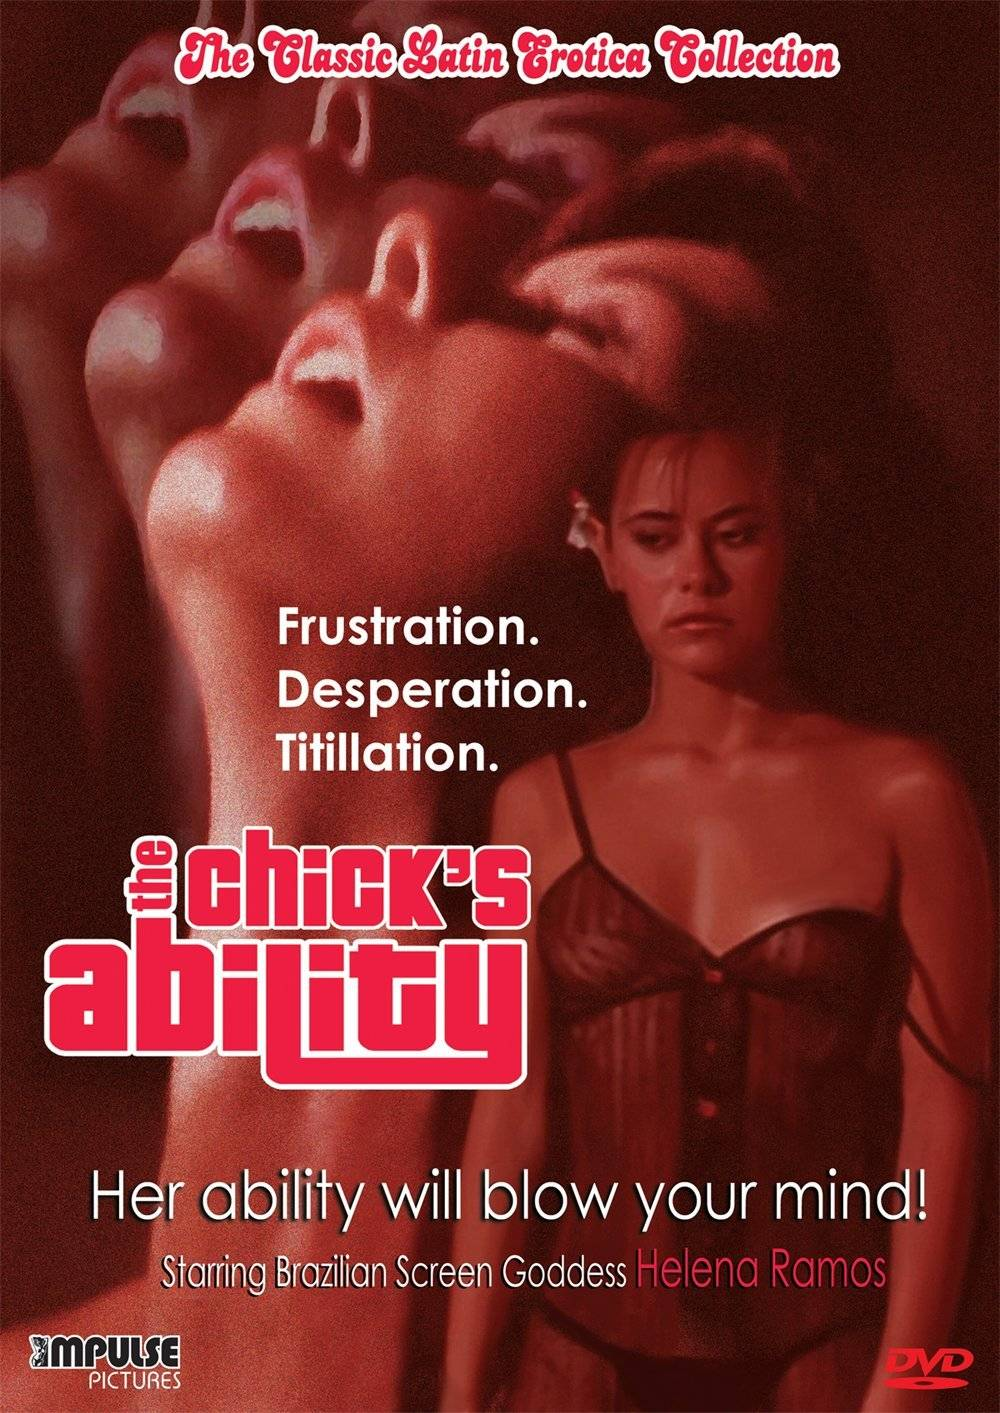 The Chick's Ability DVD cover (Impulse Pictures).